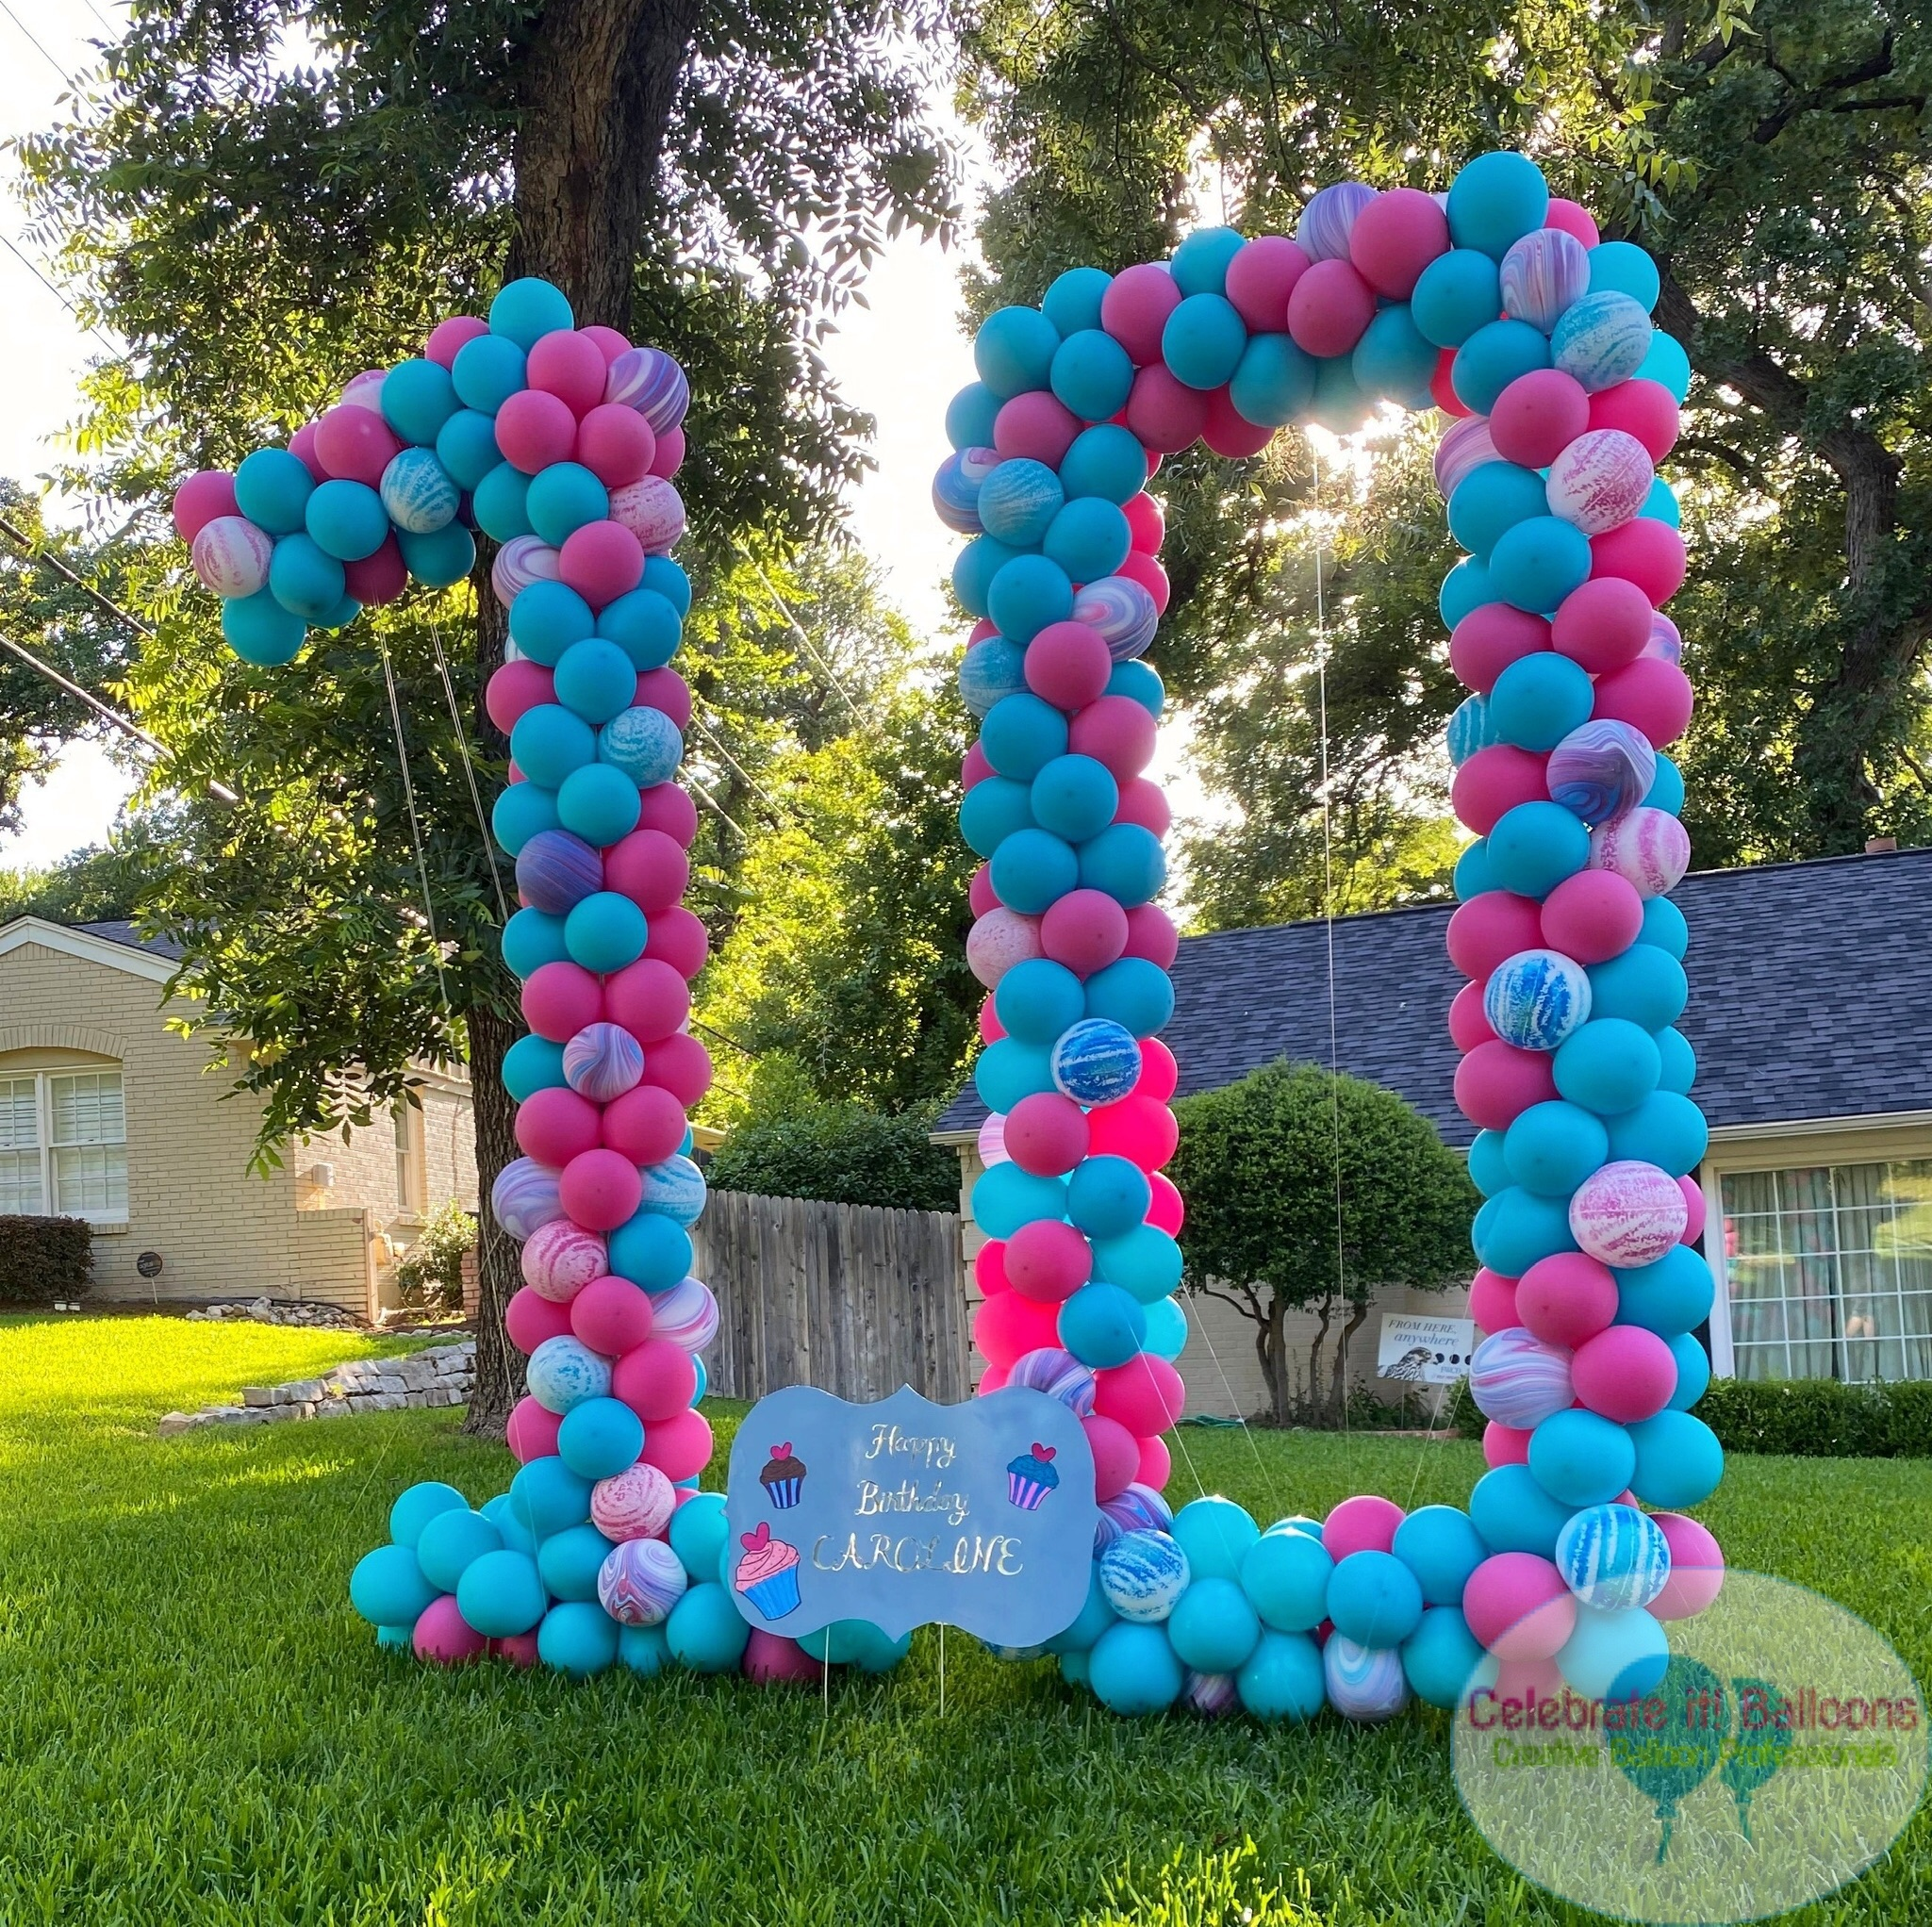 Balloon yard number 10 with custom birthday yard sign